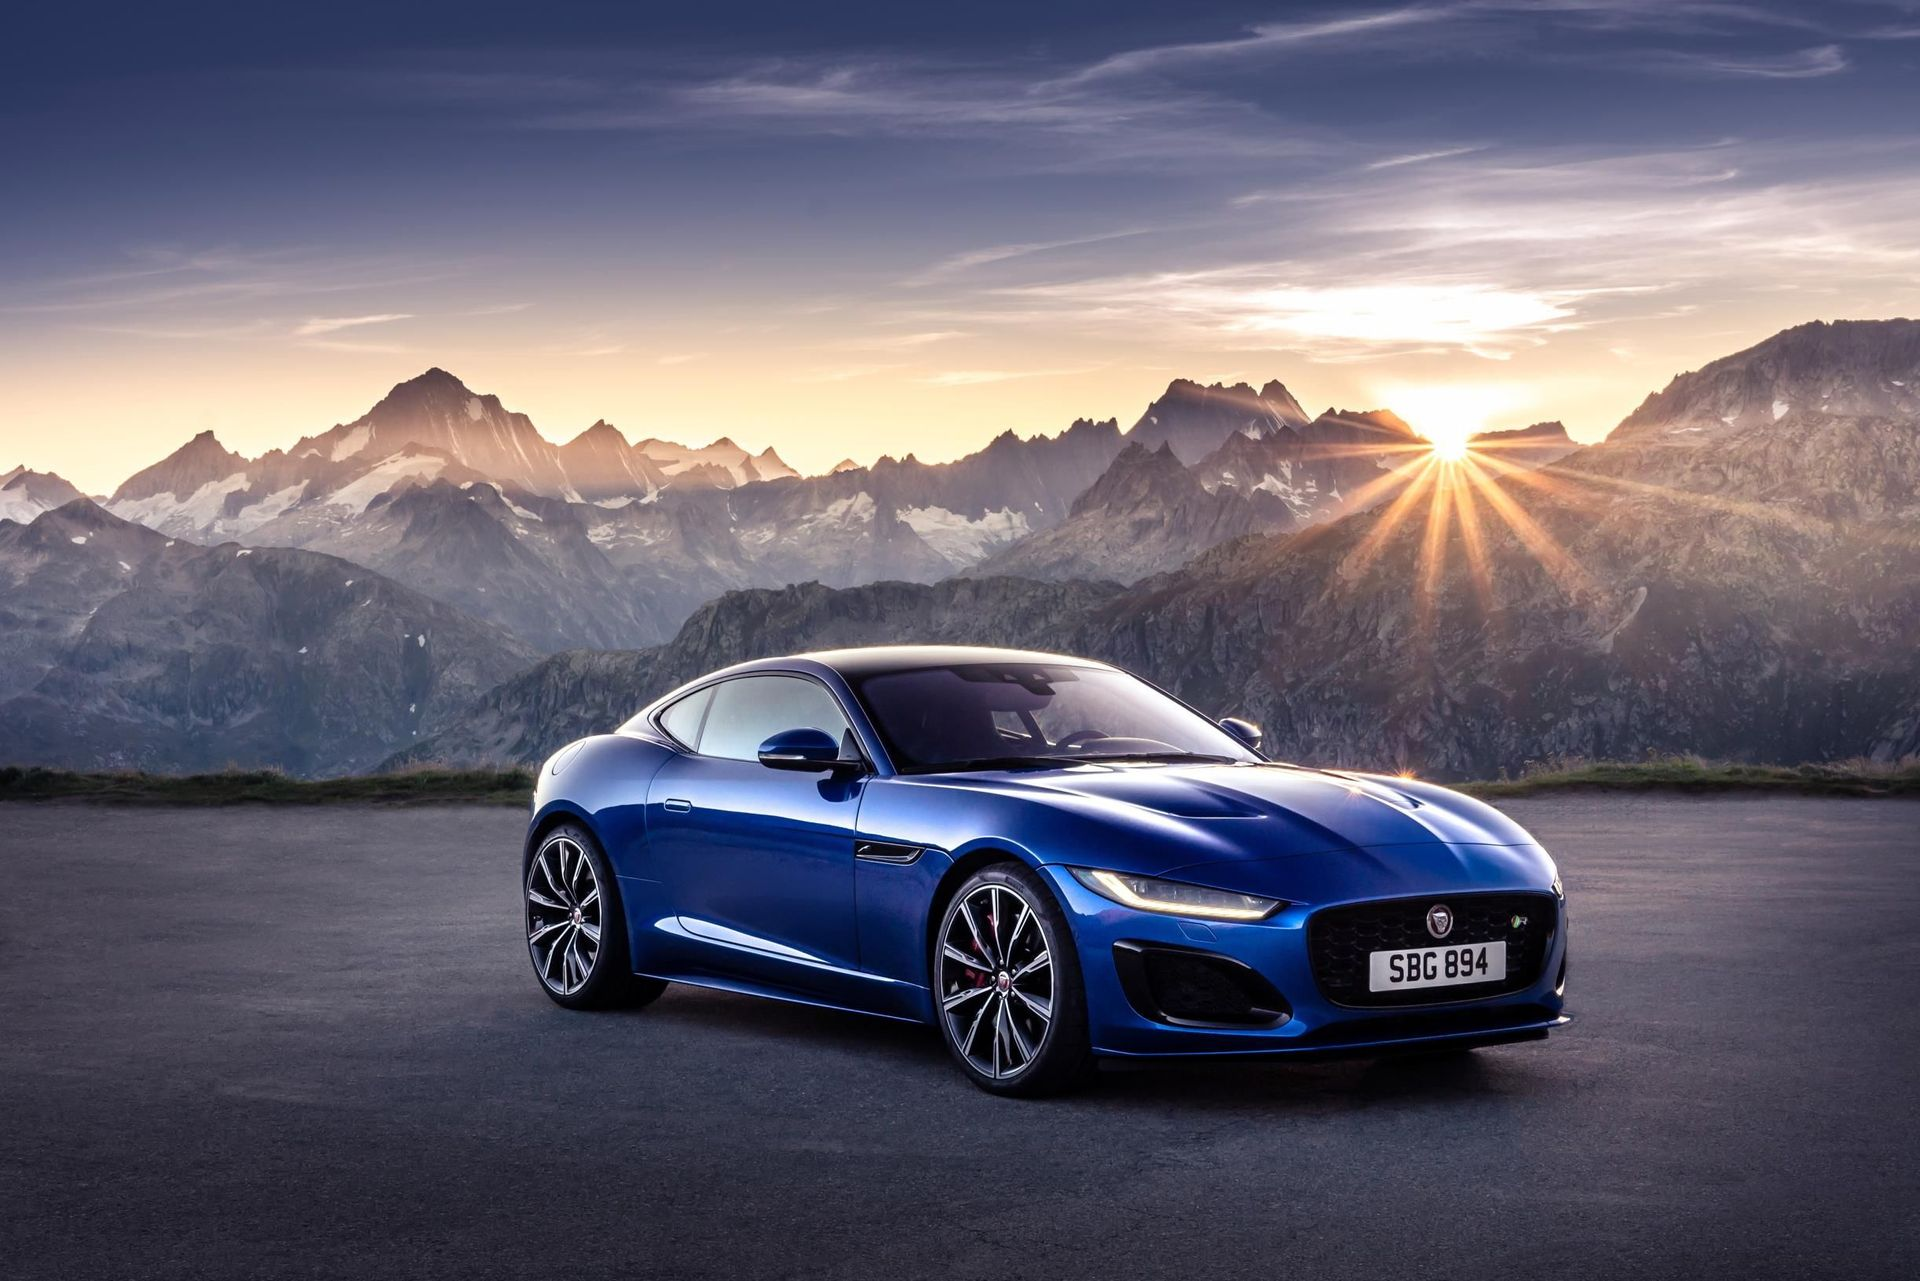 Jaguar F-Type V6 Supercharged image